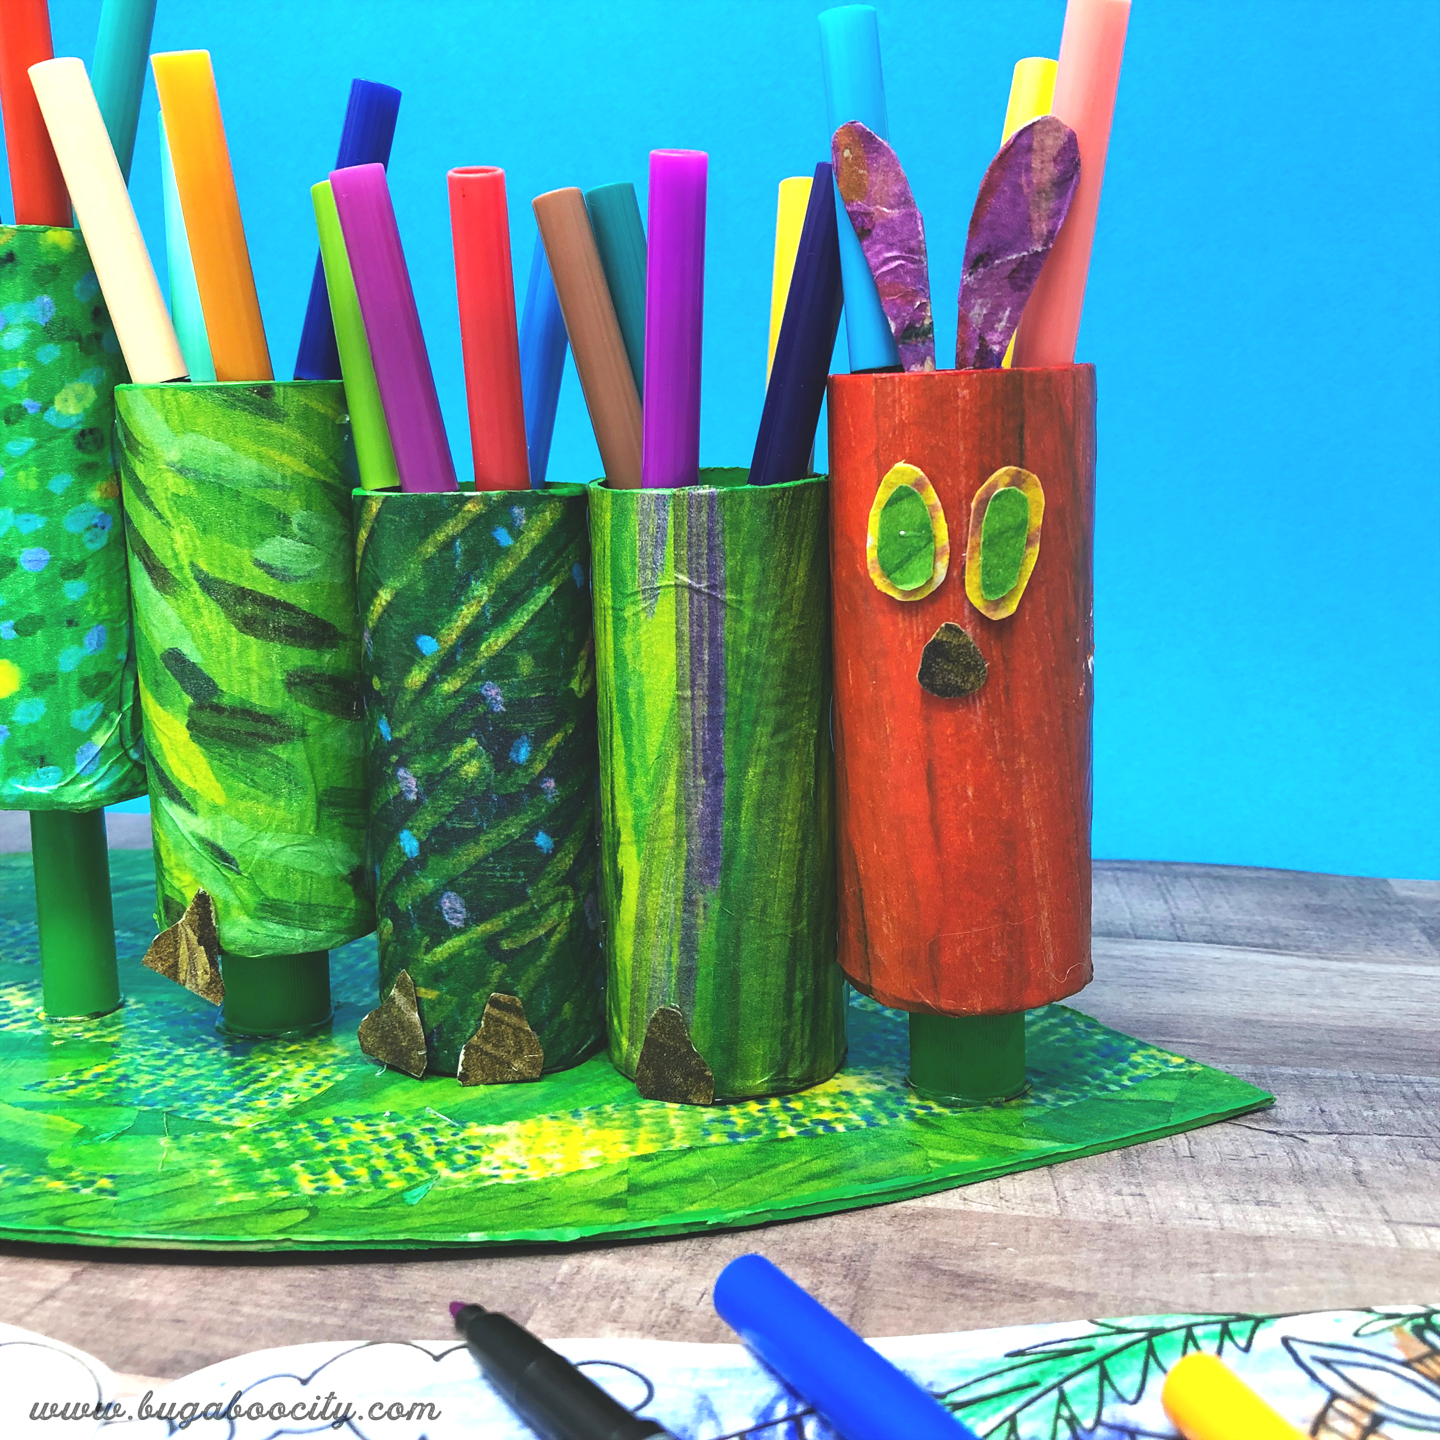 The Very Hungry Caterpillar Craft - DIY Marker Holder